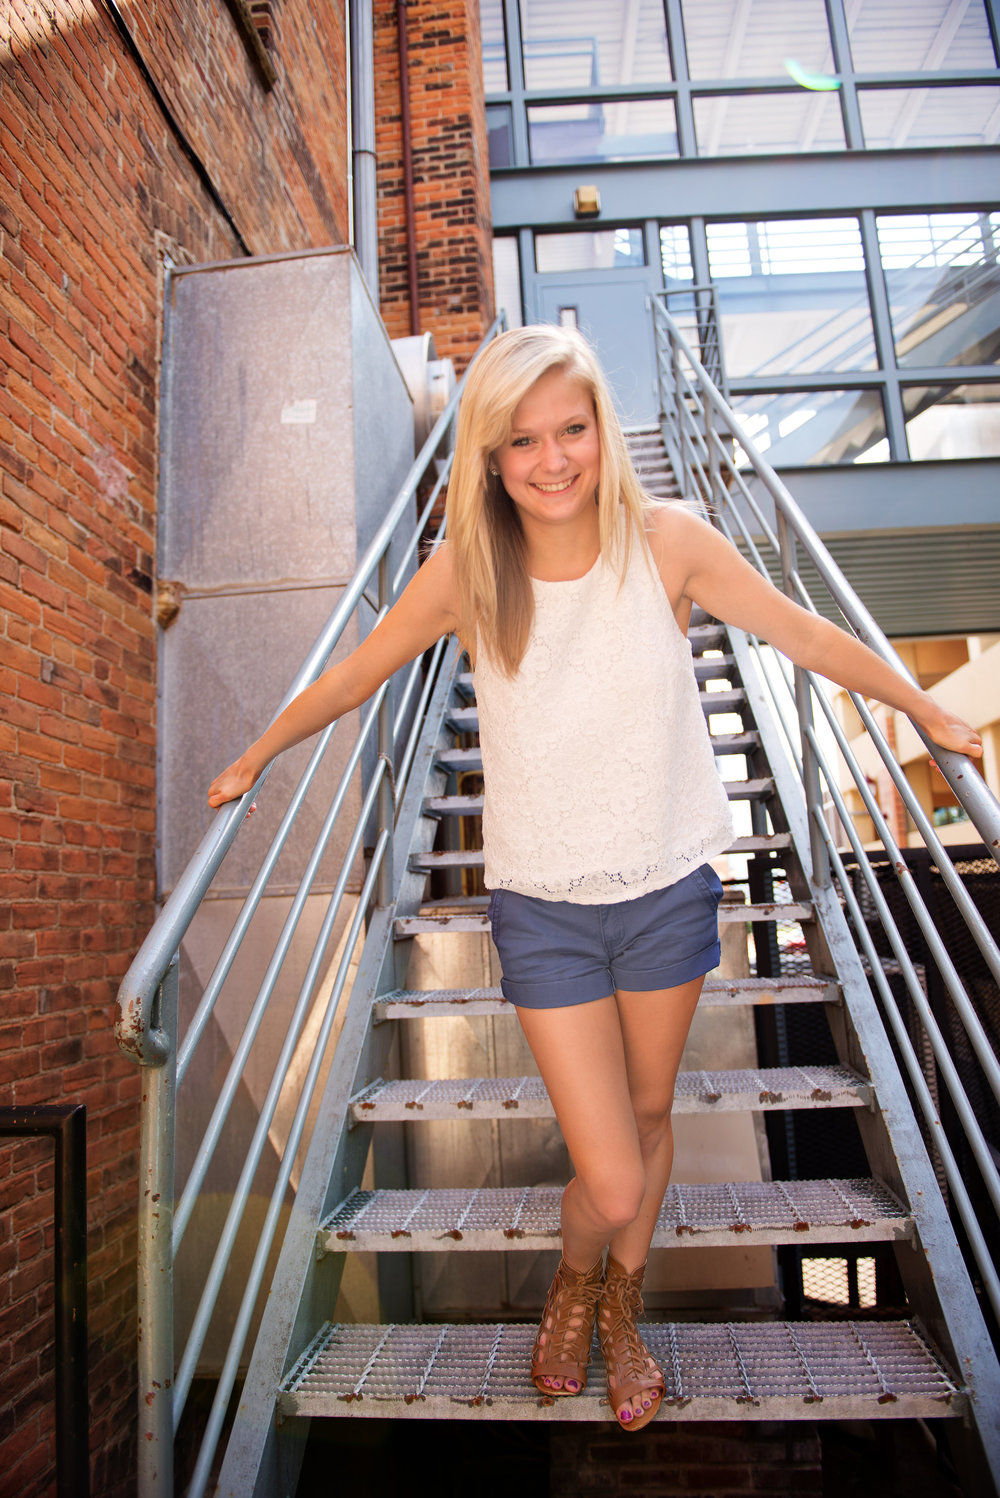 orlando-senior-girl-stairs.jpg